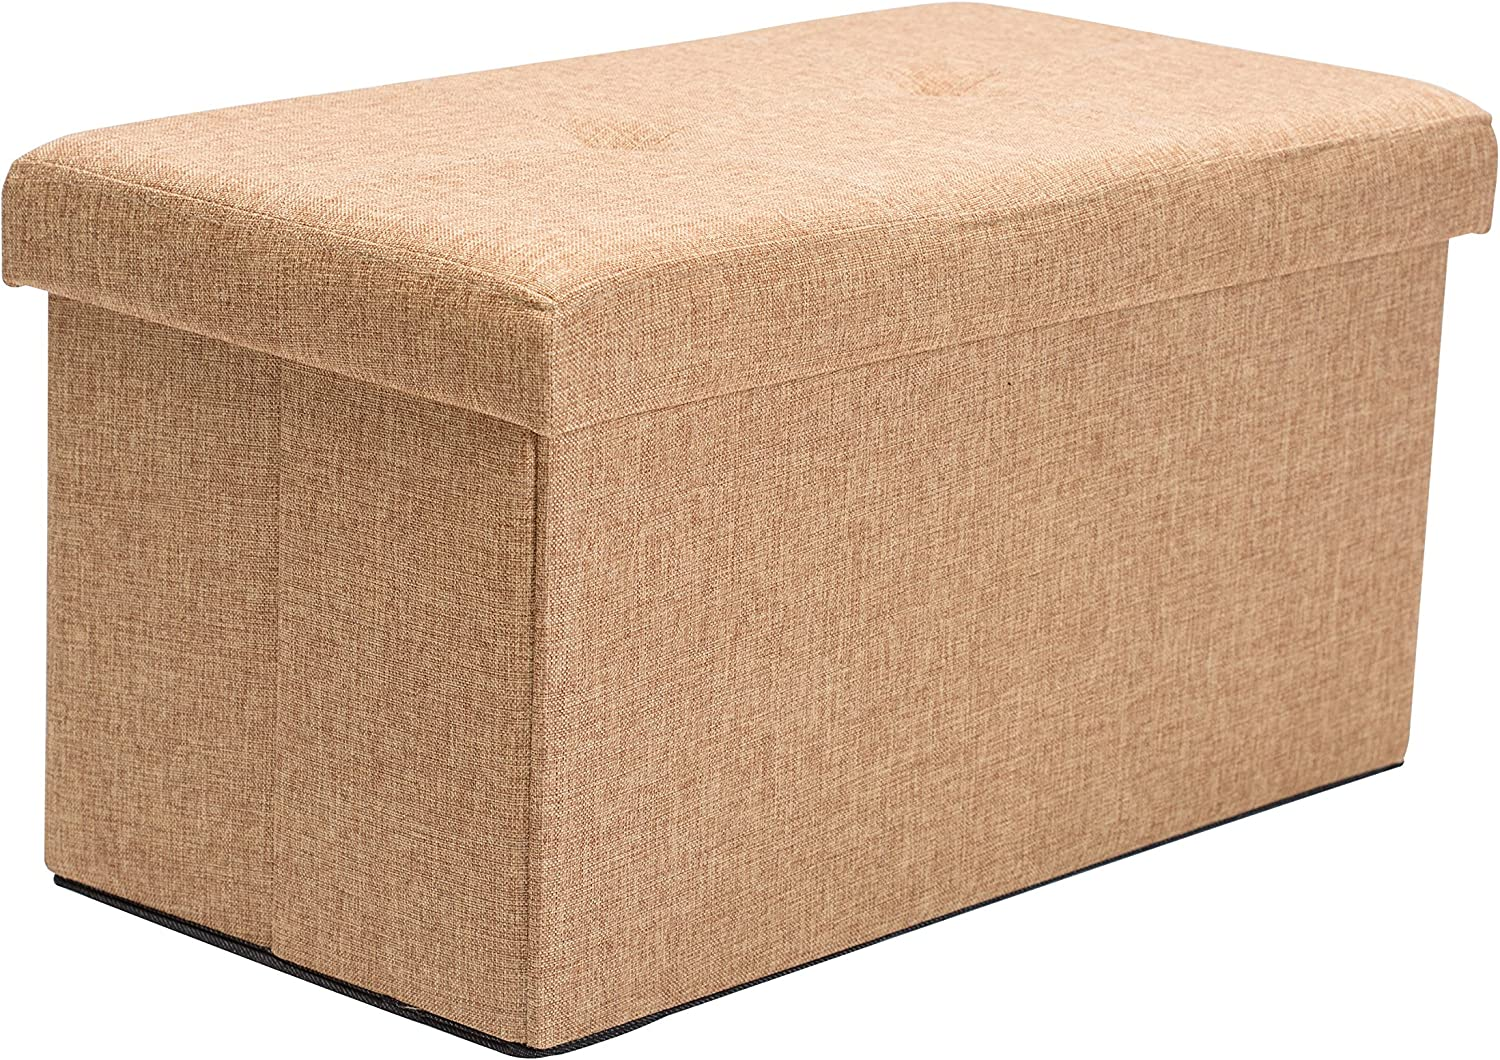 Simplify Linen Folding Storage Ottoman, Toy Box Chest, Tufted Padded Seating, Bench, Foot Rest, Stool, Double, Camel